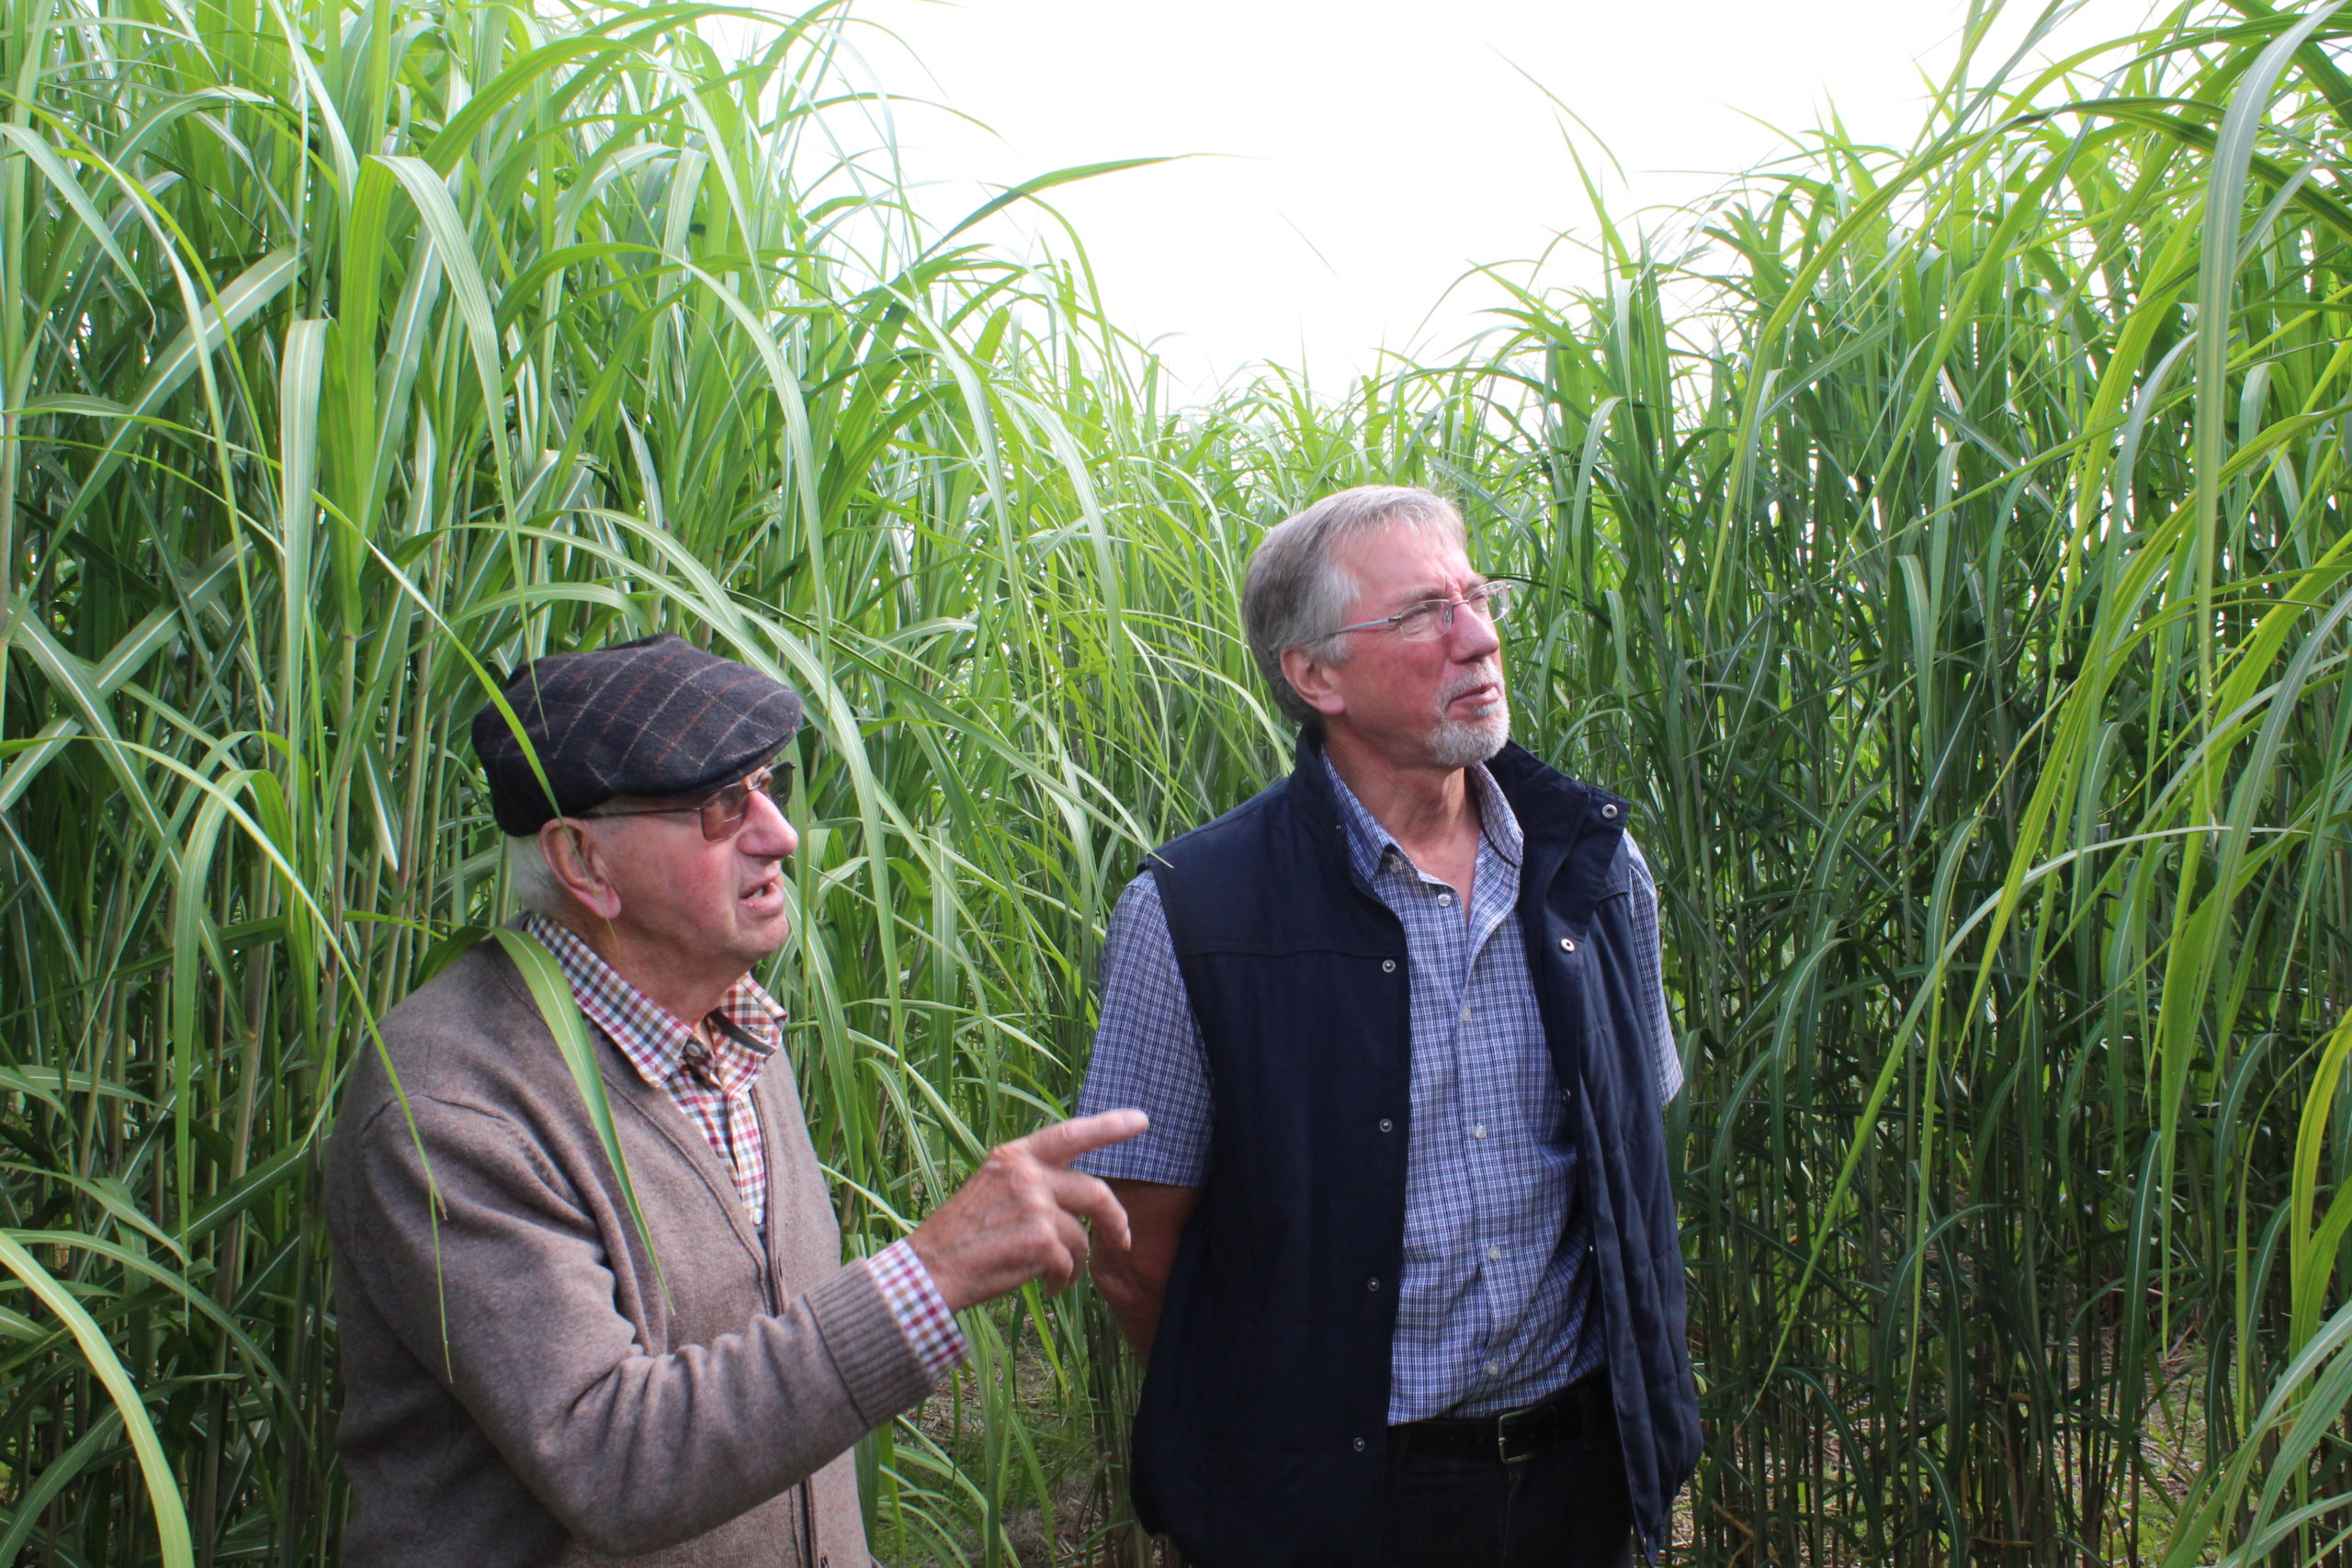 Mike Woollacott (right) is working with EBRI to run a series of events for farm based businesses in the West Midlands